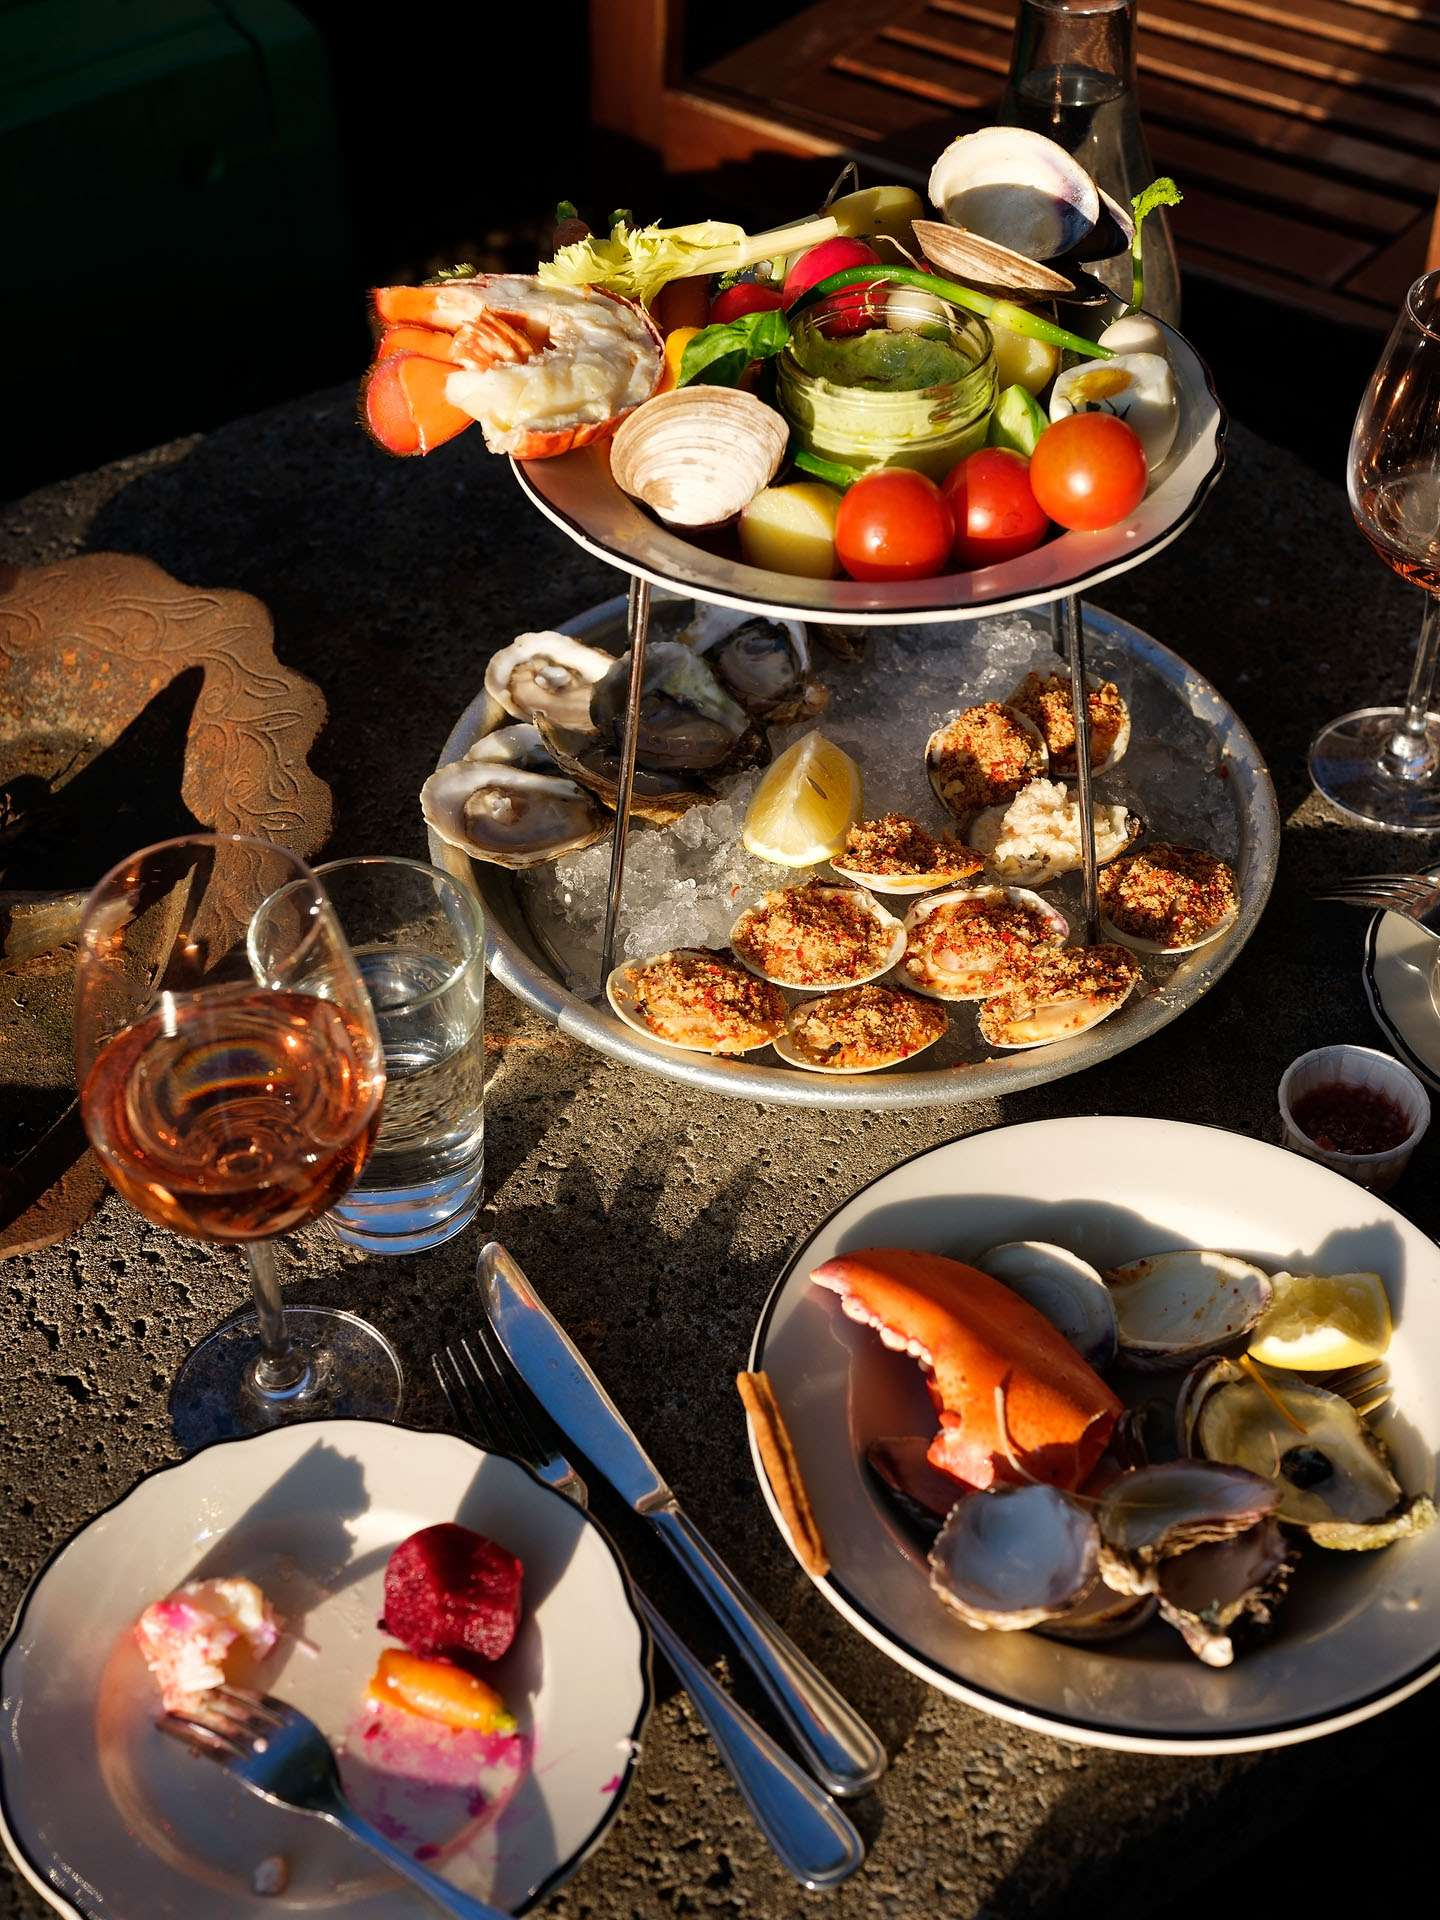 platers of seafood and oysters photographed by Guillaume Simoneau as part of Off Duty Montreal series for The Wall Street Journal magazine